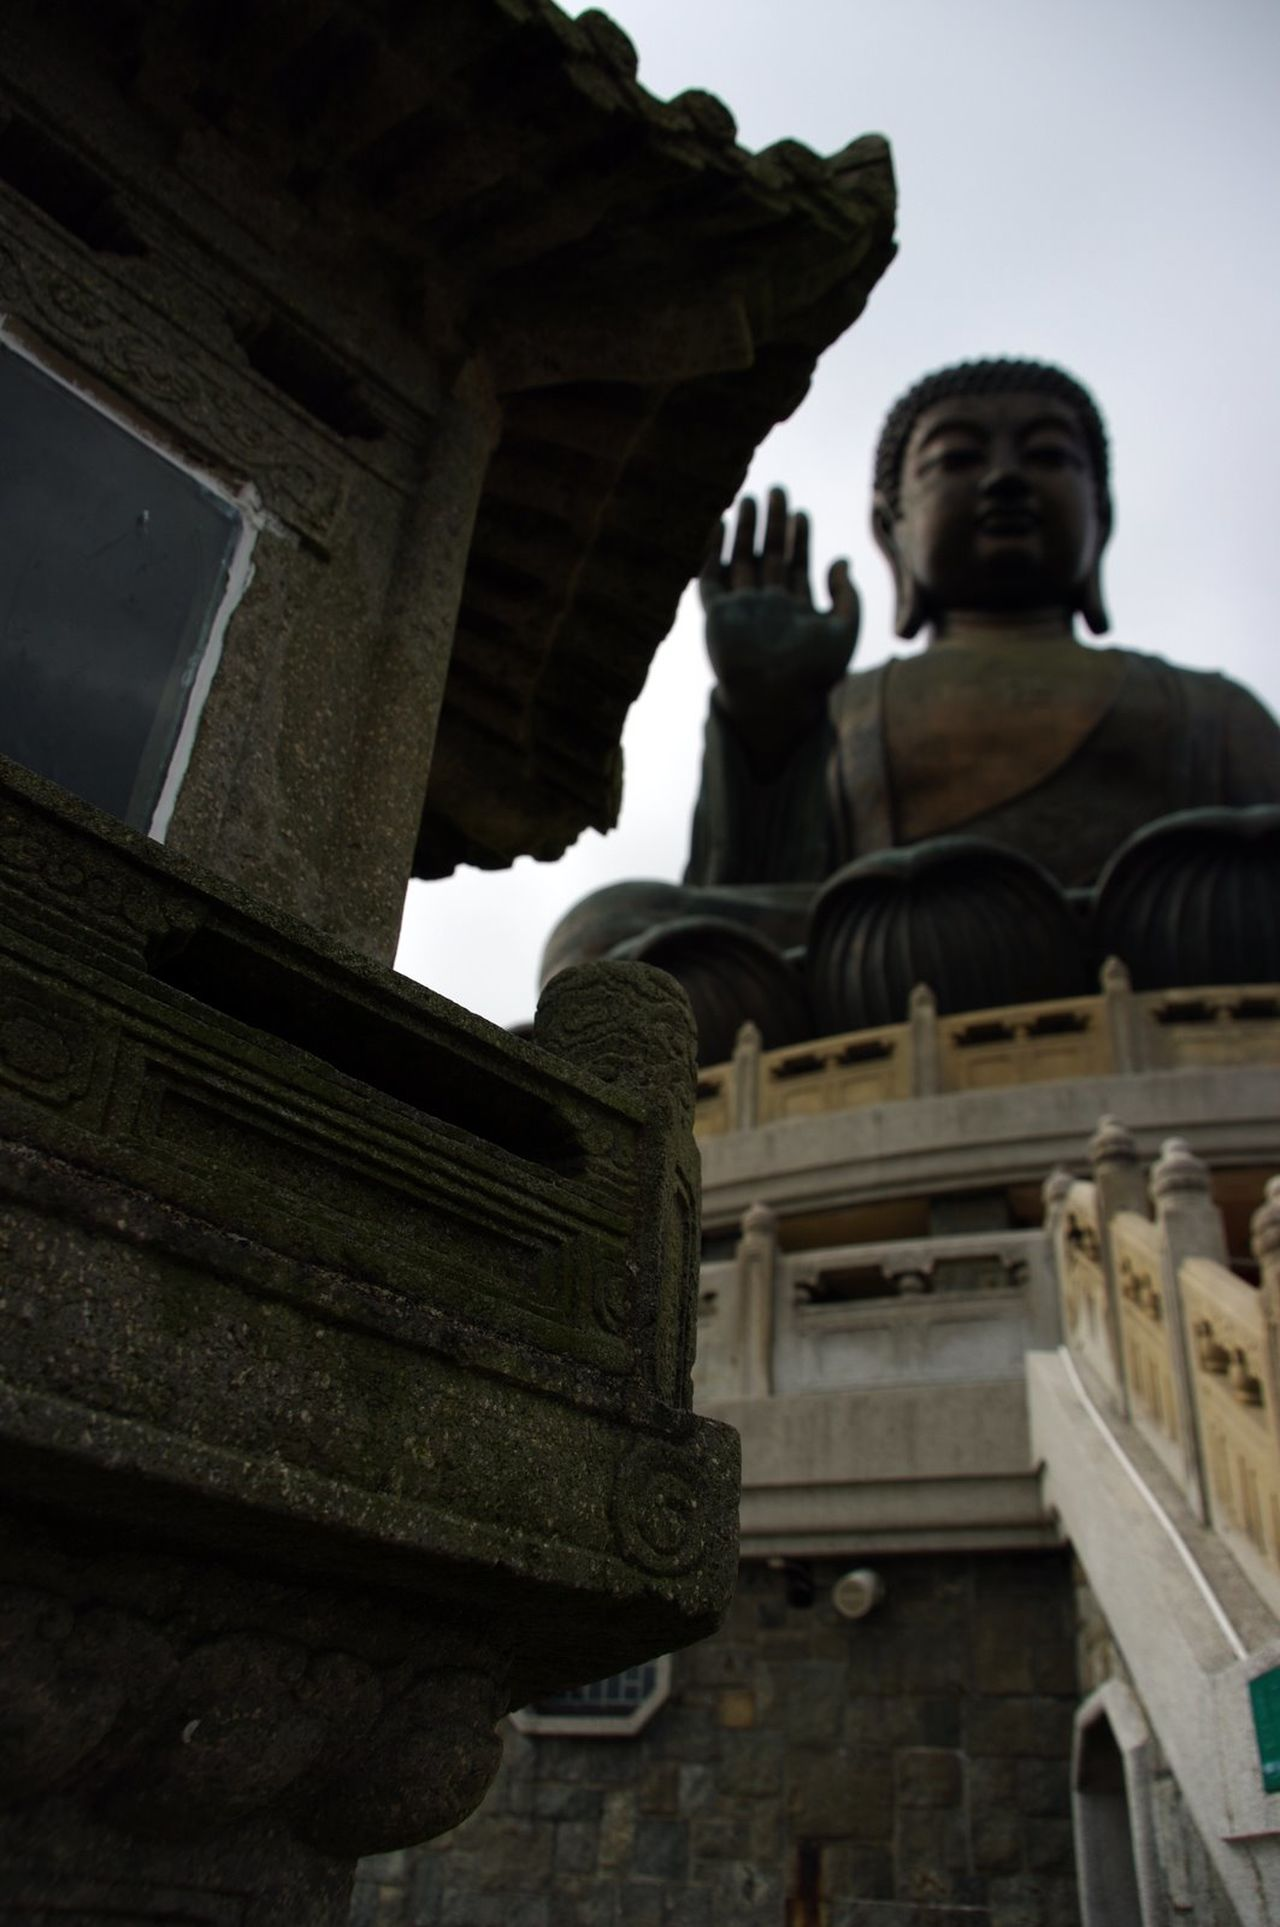 HK memories, 2009 Arched Architecture Art And Craft Built Structure Creativity Famous Place History Human Representation Low Angle View No People Old Town Place Of Worship Sculpture Sky Statue Temple Temple - Building Tian Tan Buddha (Giant Buddha) 天壇大佛 Lantau Island Day Trip